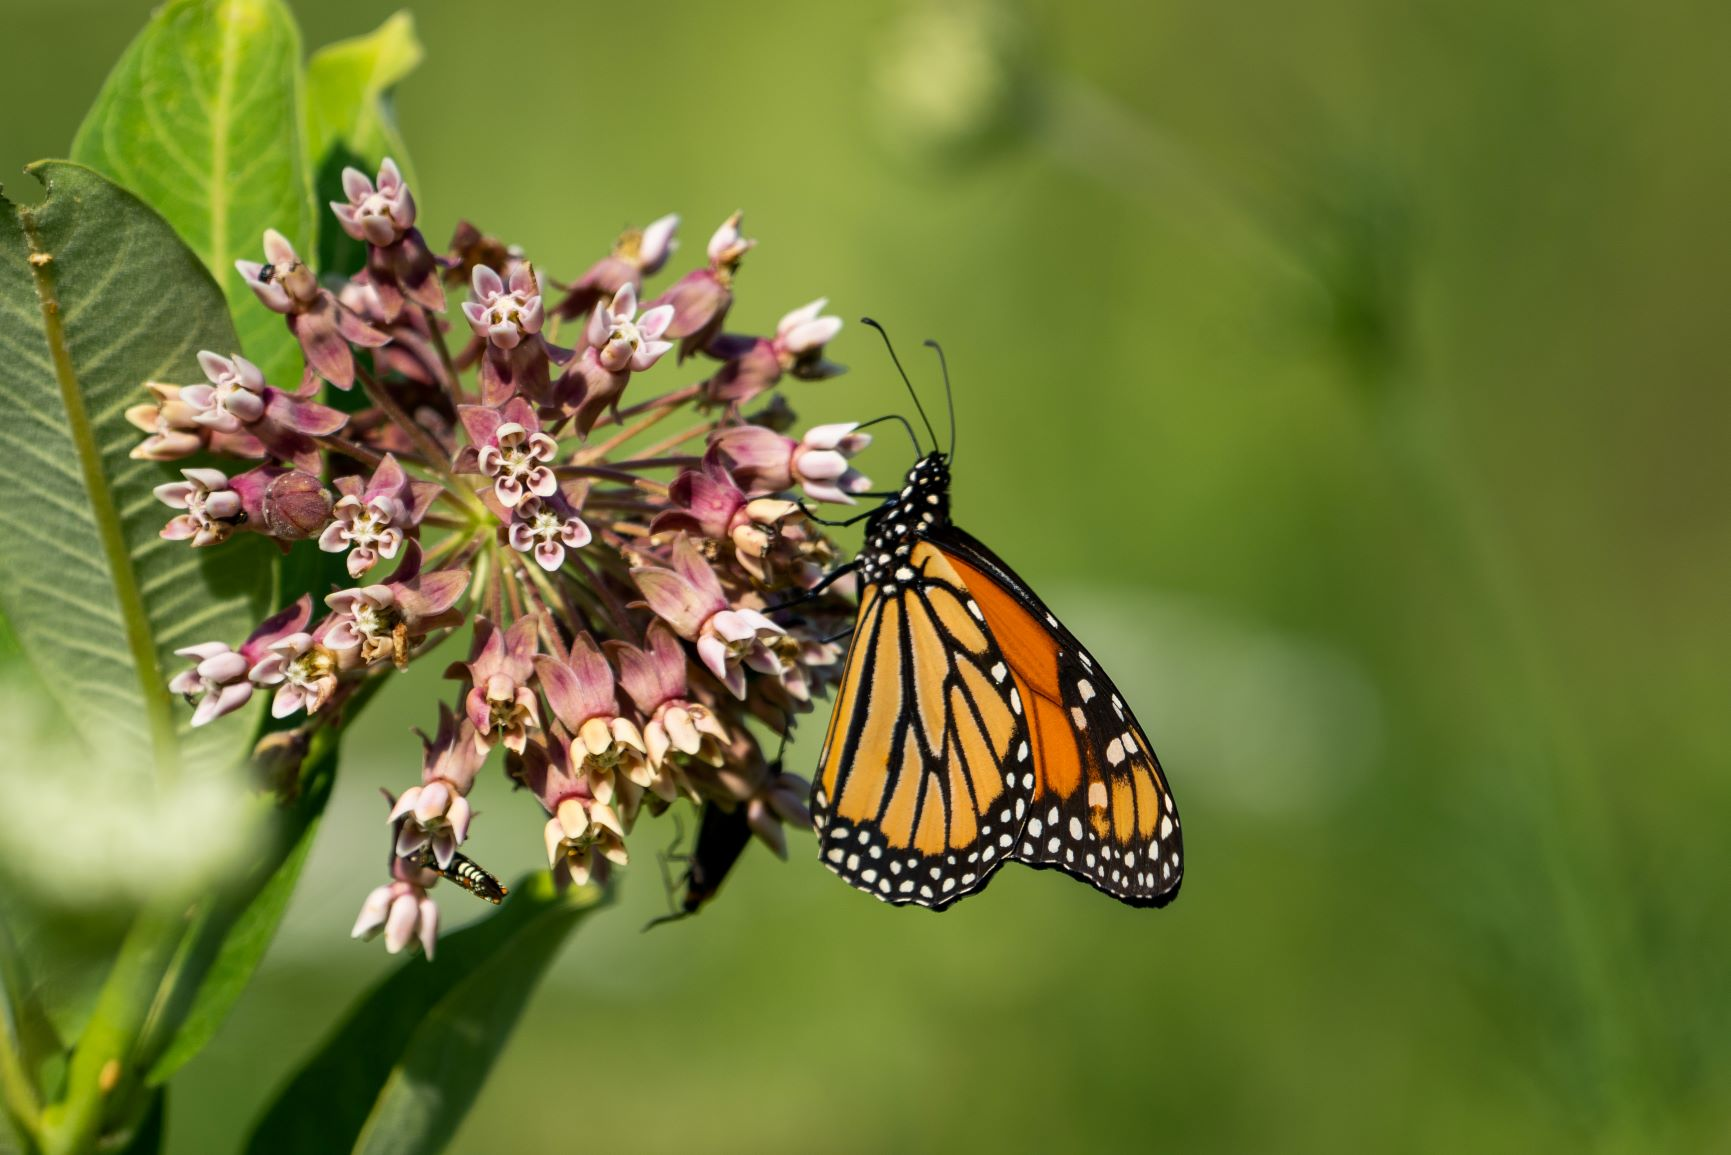 A monarch butterfly pollinates a milkweed plant.